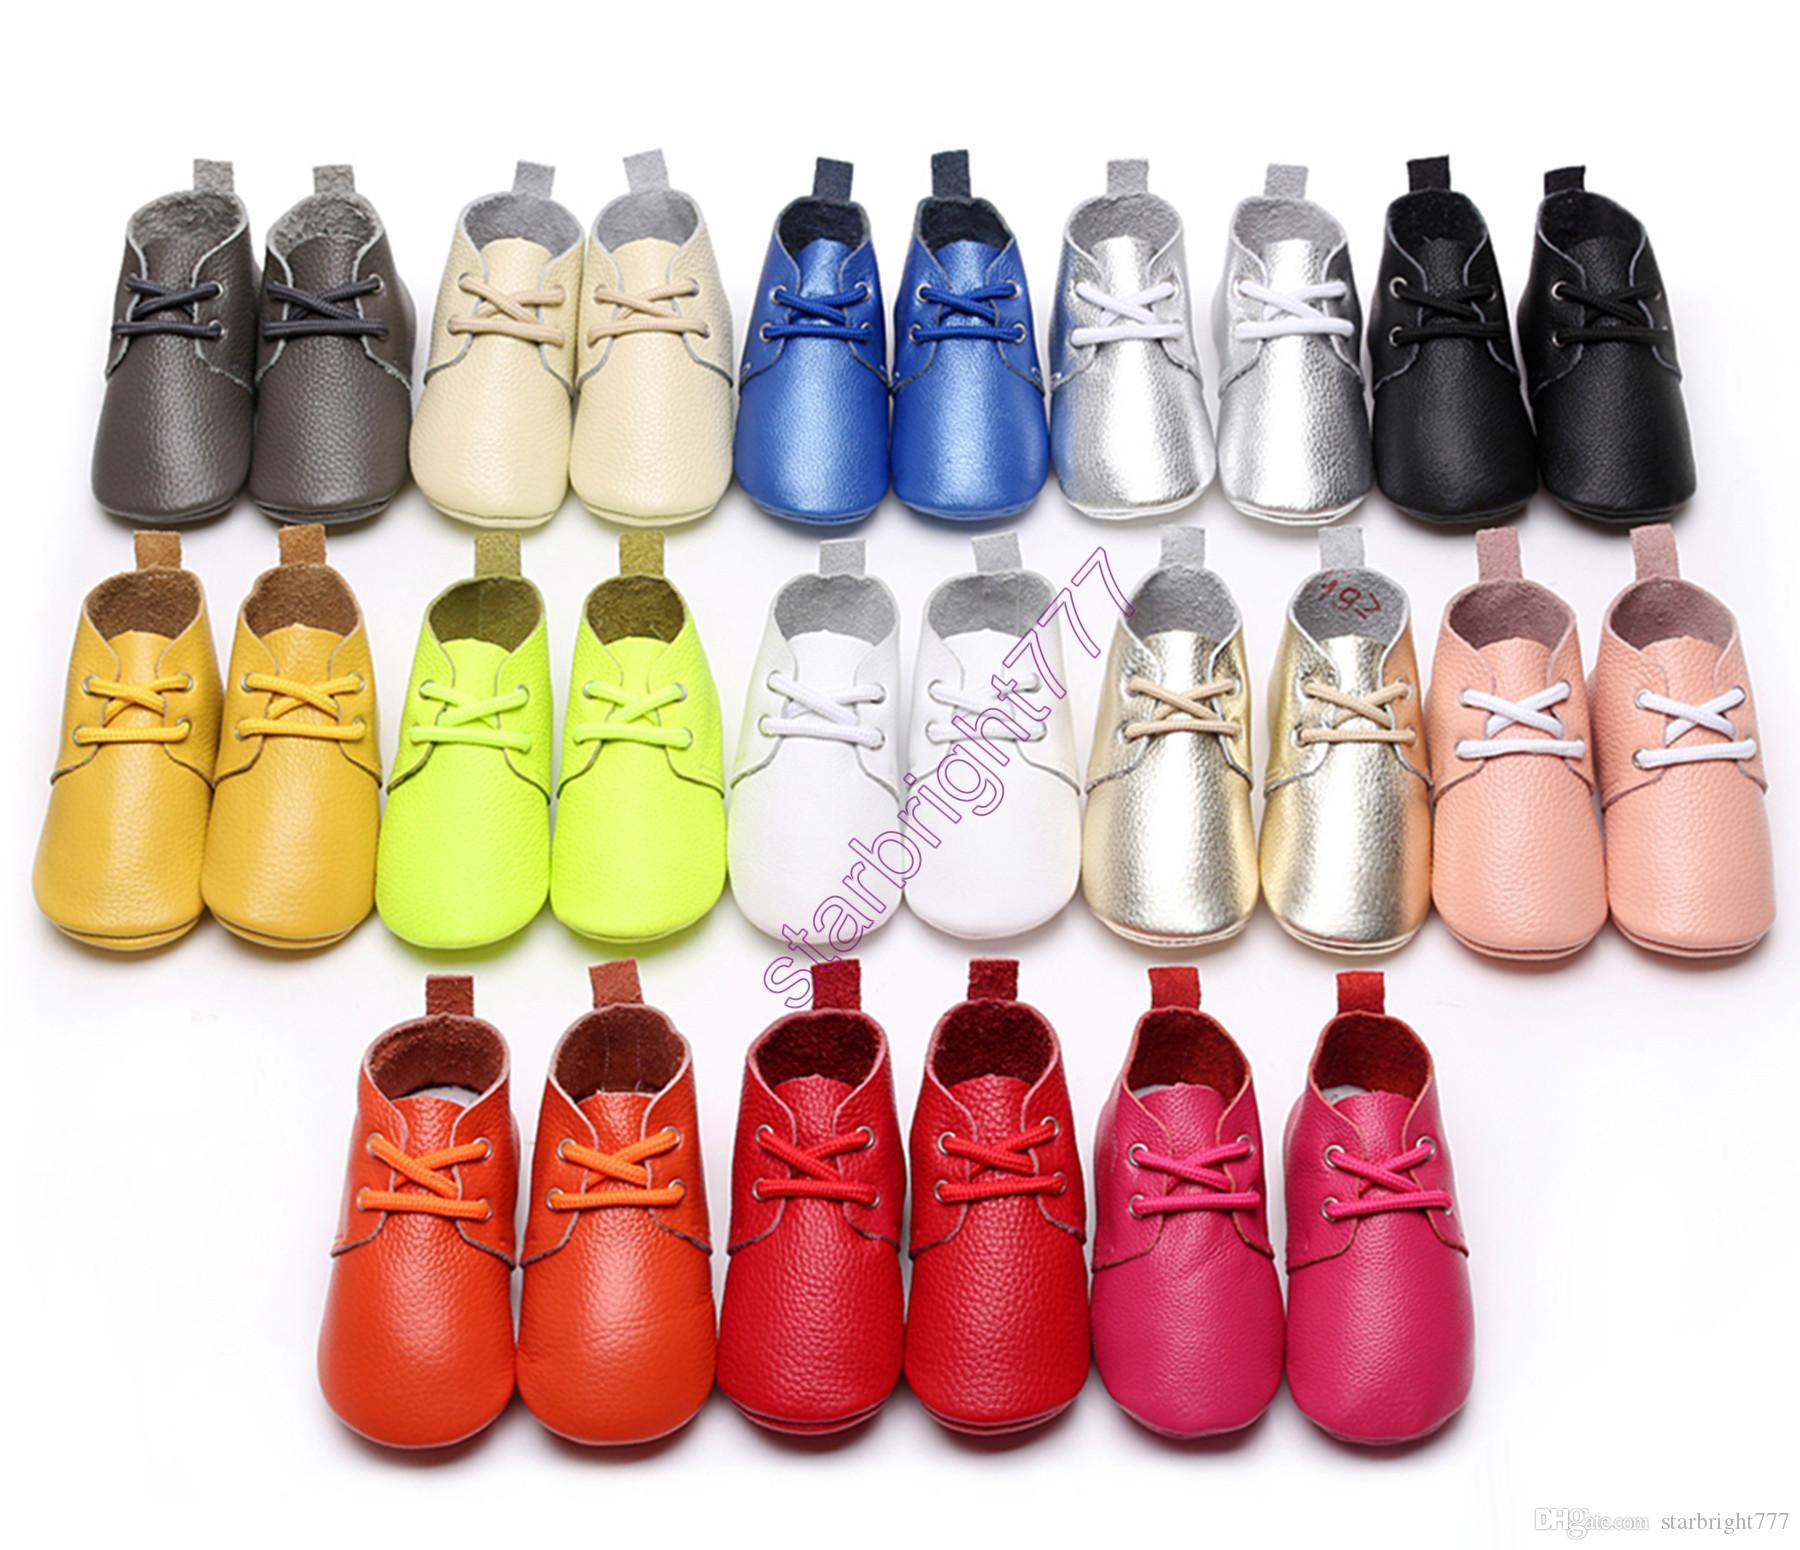 INS Toddler Genuine Cow Leather Baby Lace UP Shoes Infant Girls Boys Soft Sole Casual Indoor Outdoor Walking Sneakers Shoes Prewalker